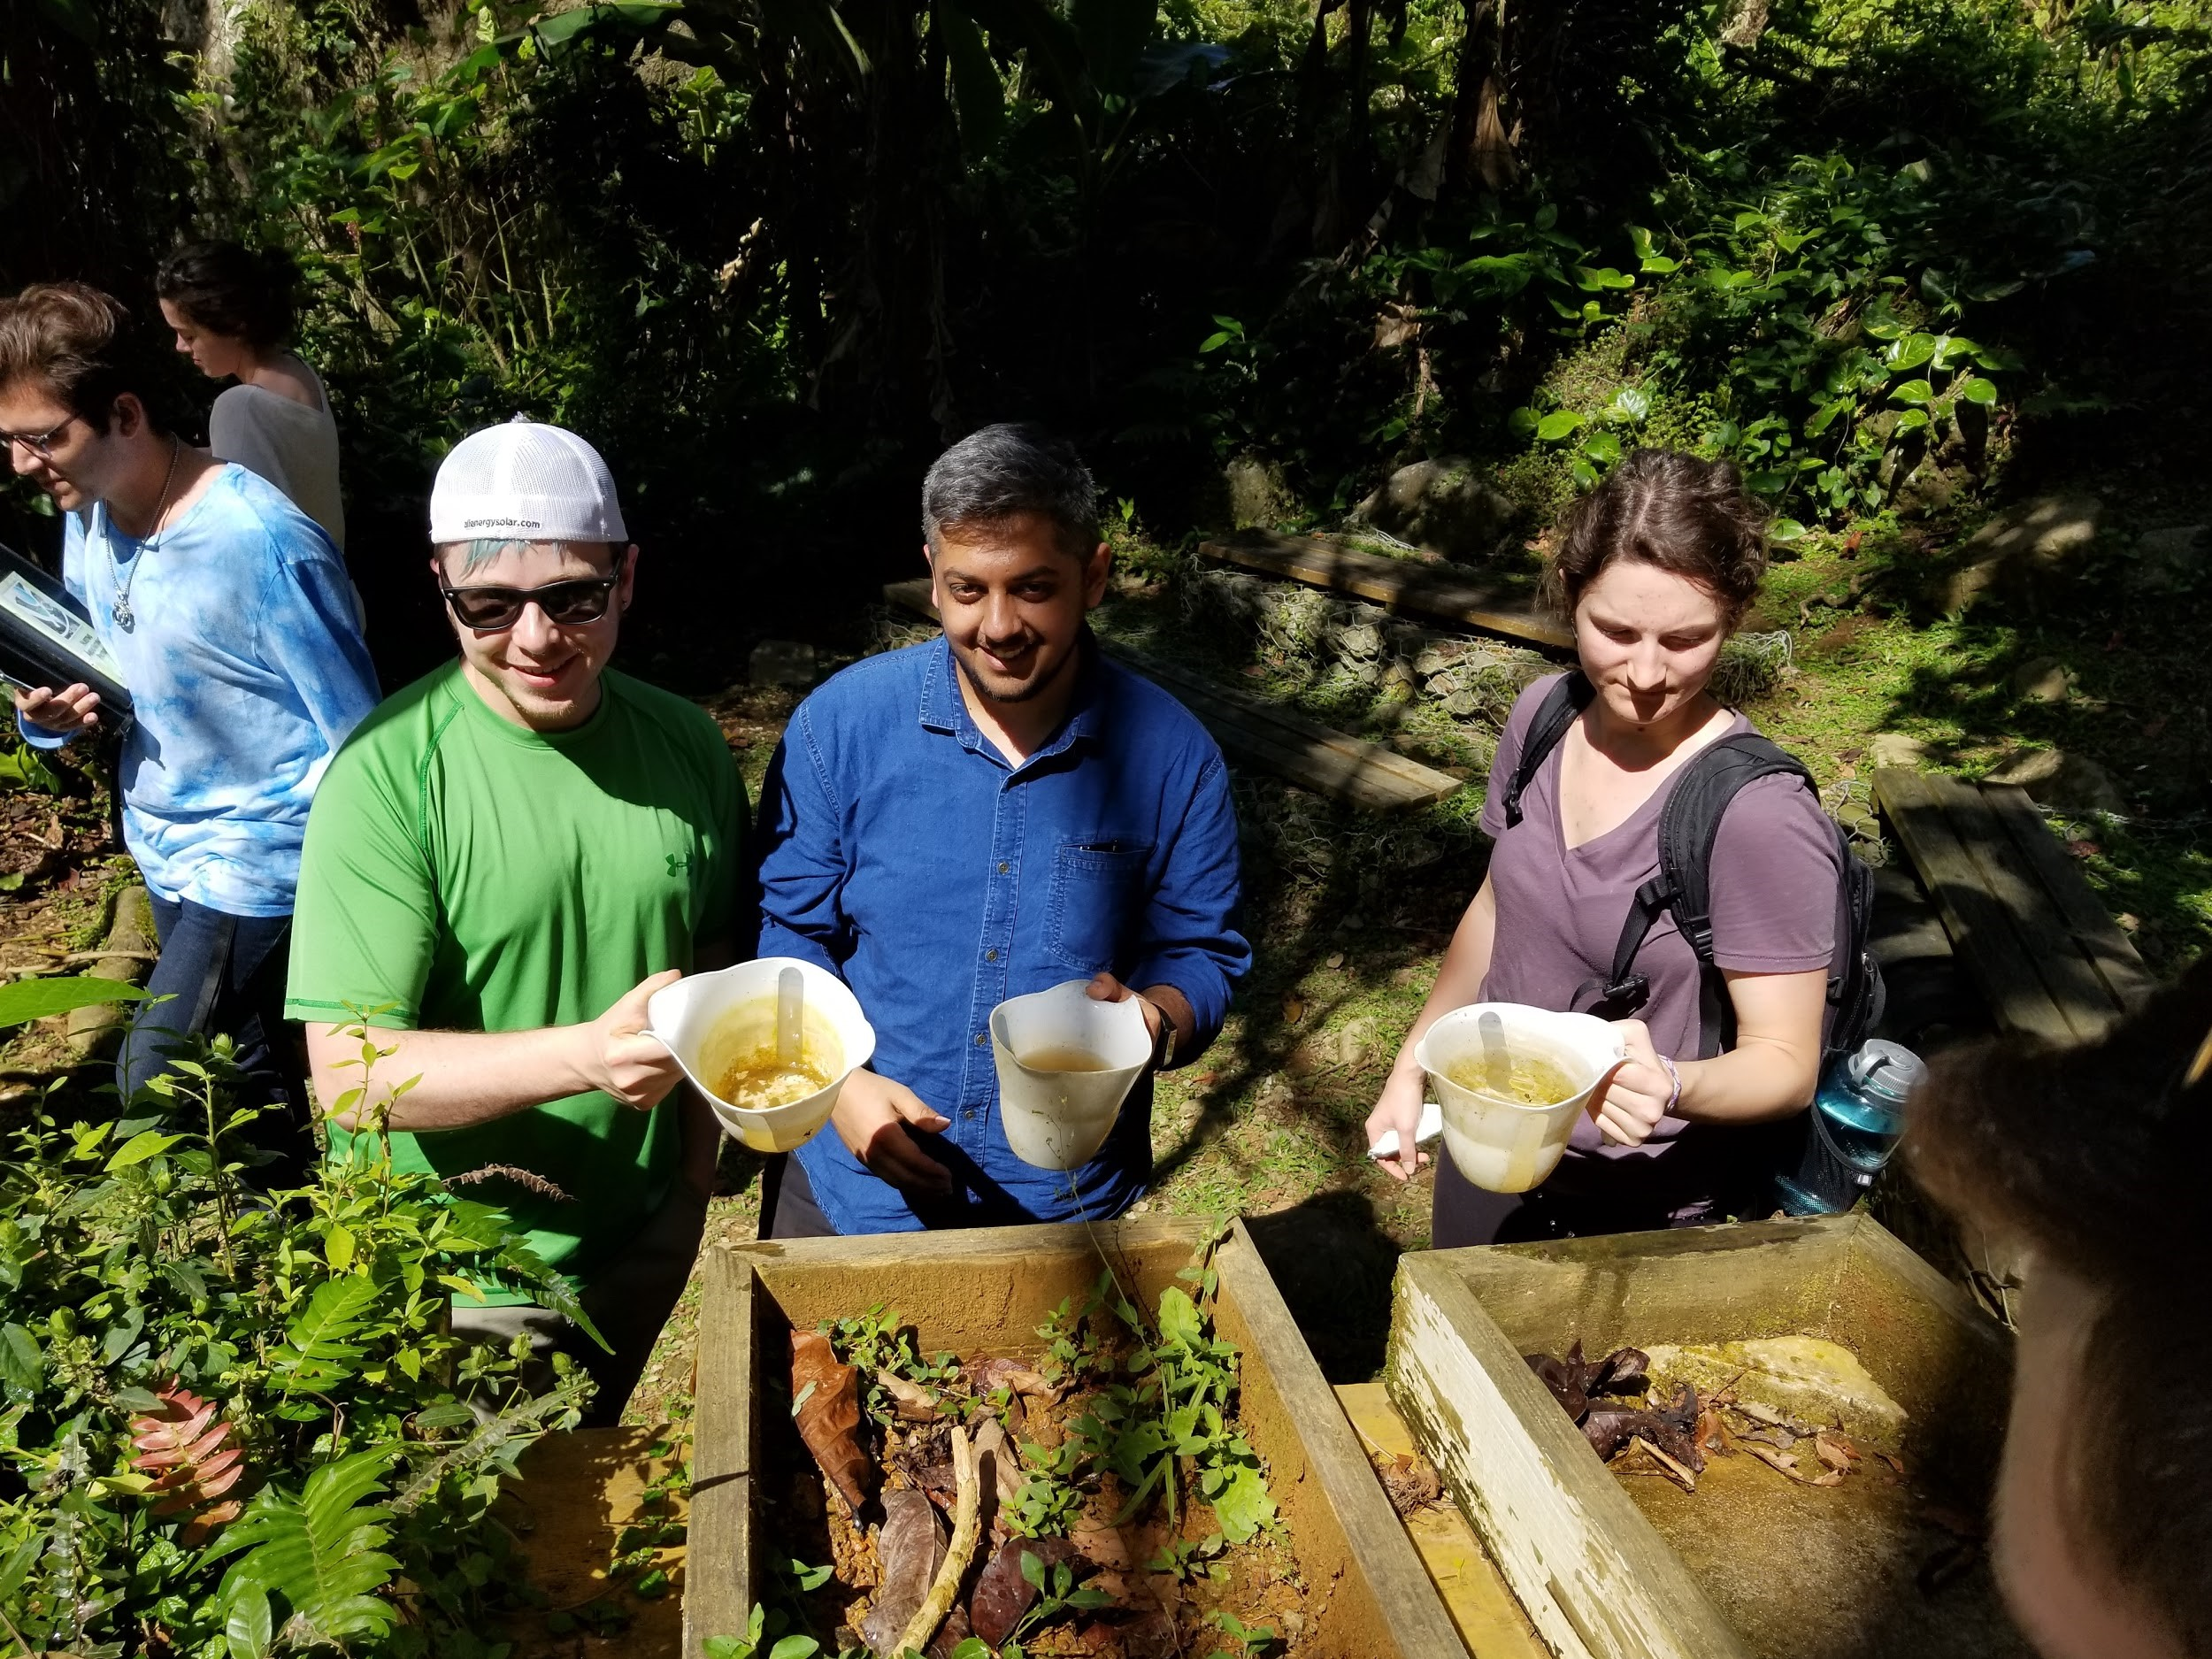 UMN Students learning about Water Run-off, From Left to Right: Garrett Burnham, Rajeev Atha, Carlie Derouin